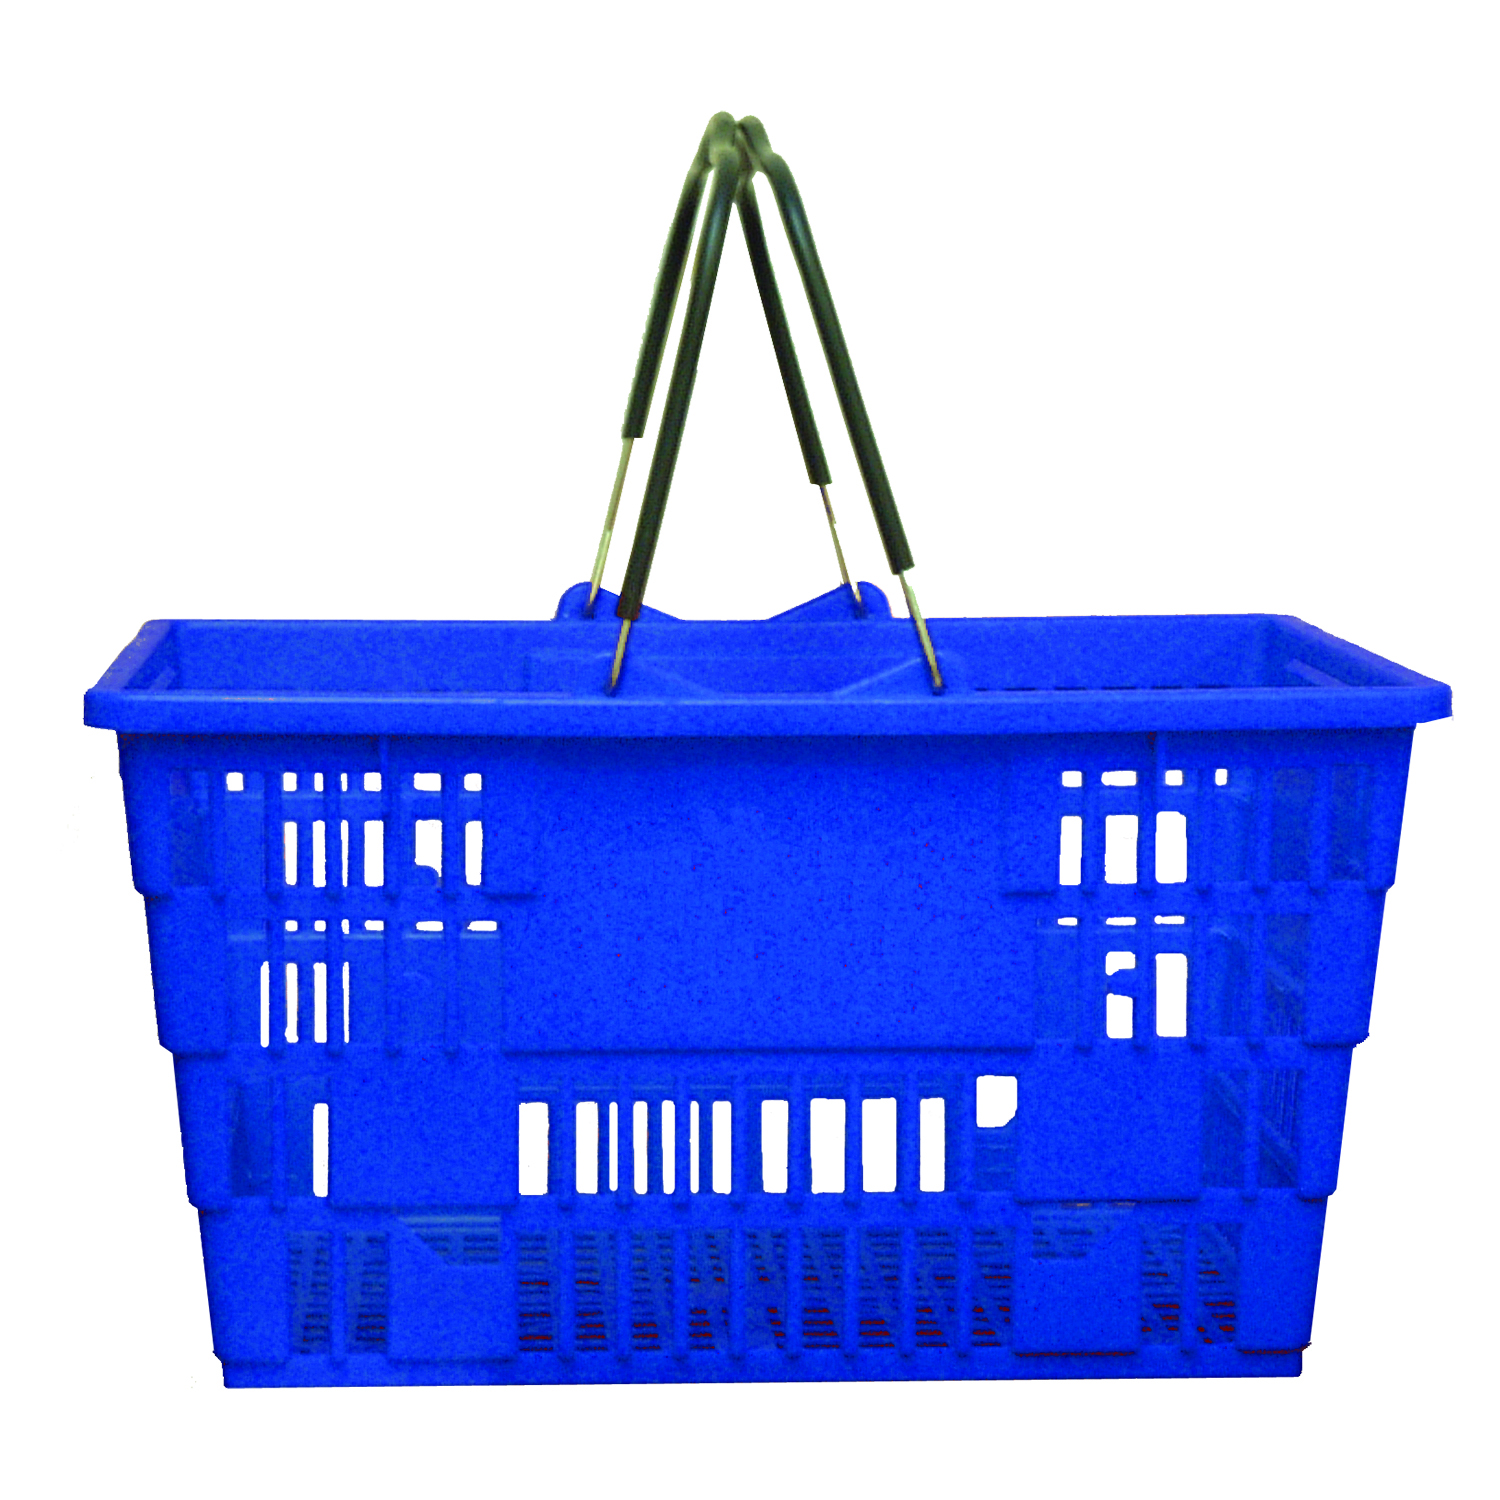 Jumbo Baskets, Blue (set of 16)